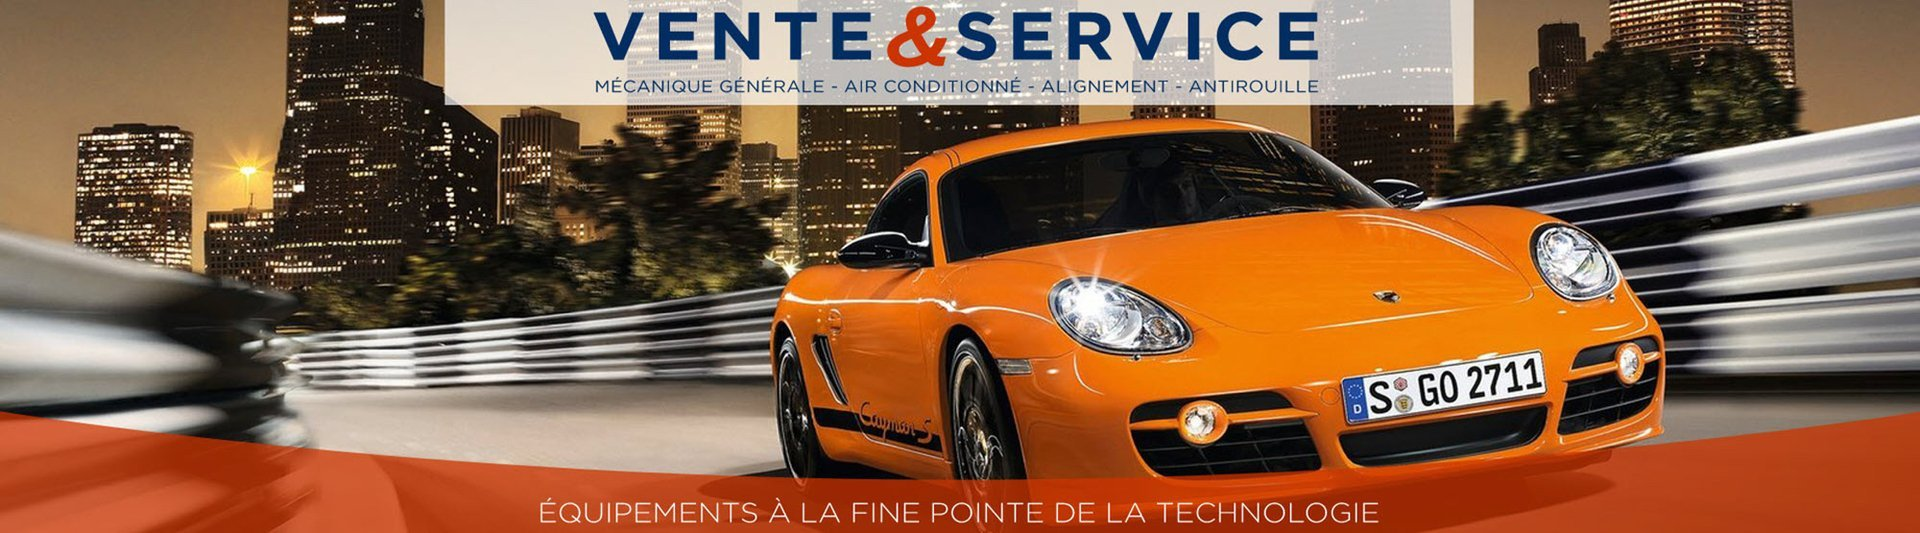 Vente d'autos Fred Inc.-banner1